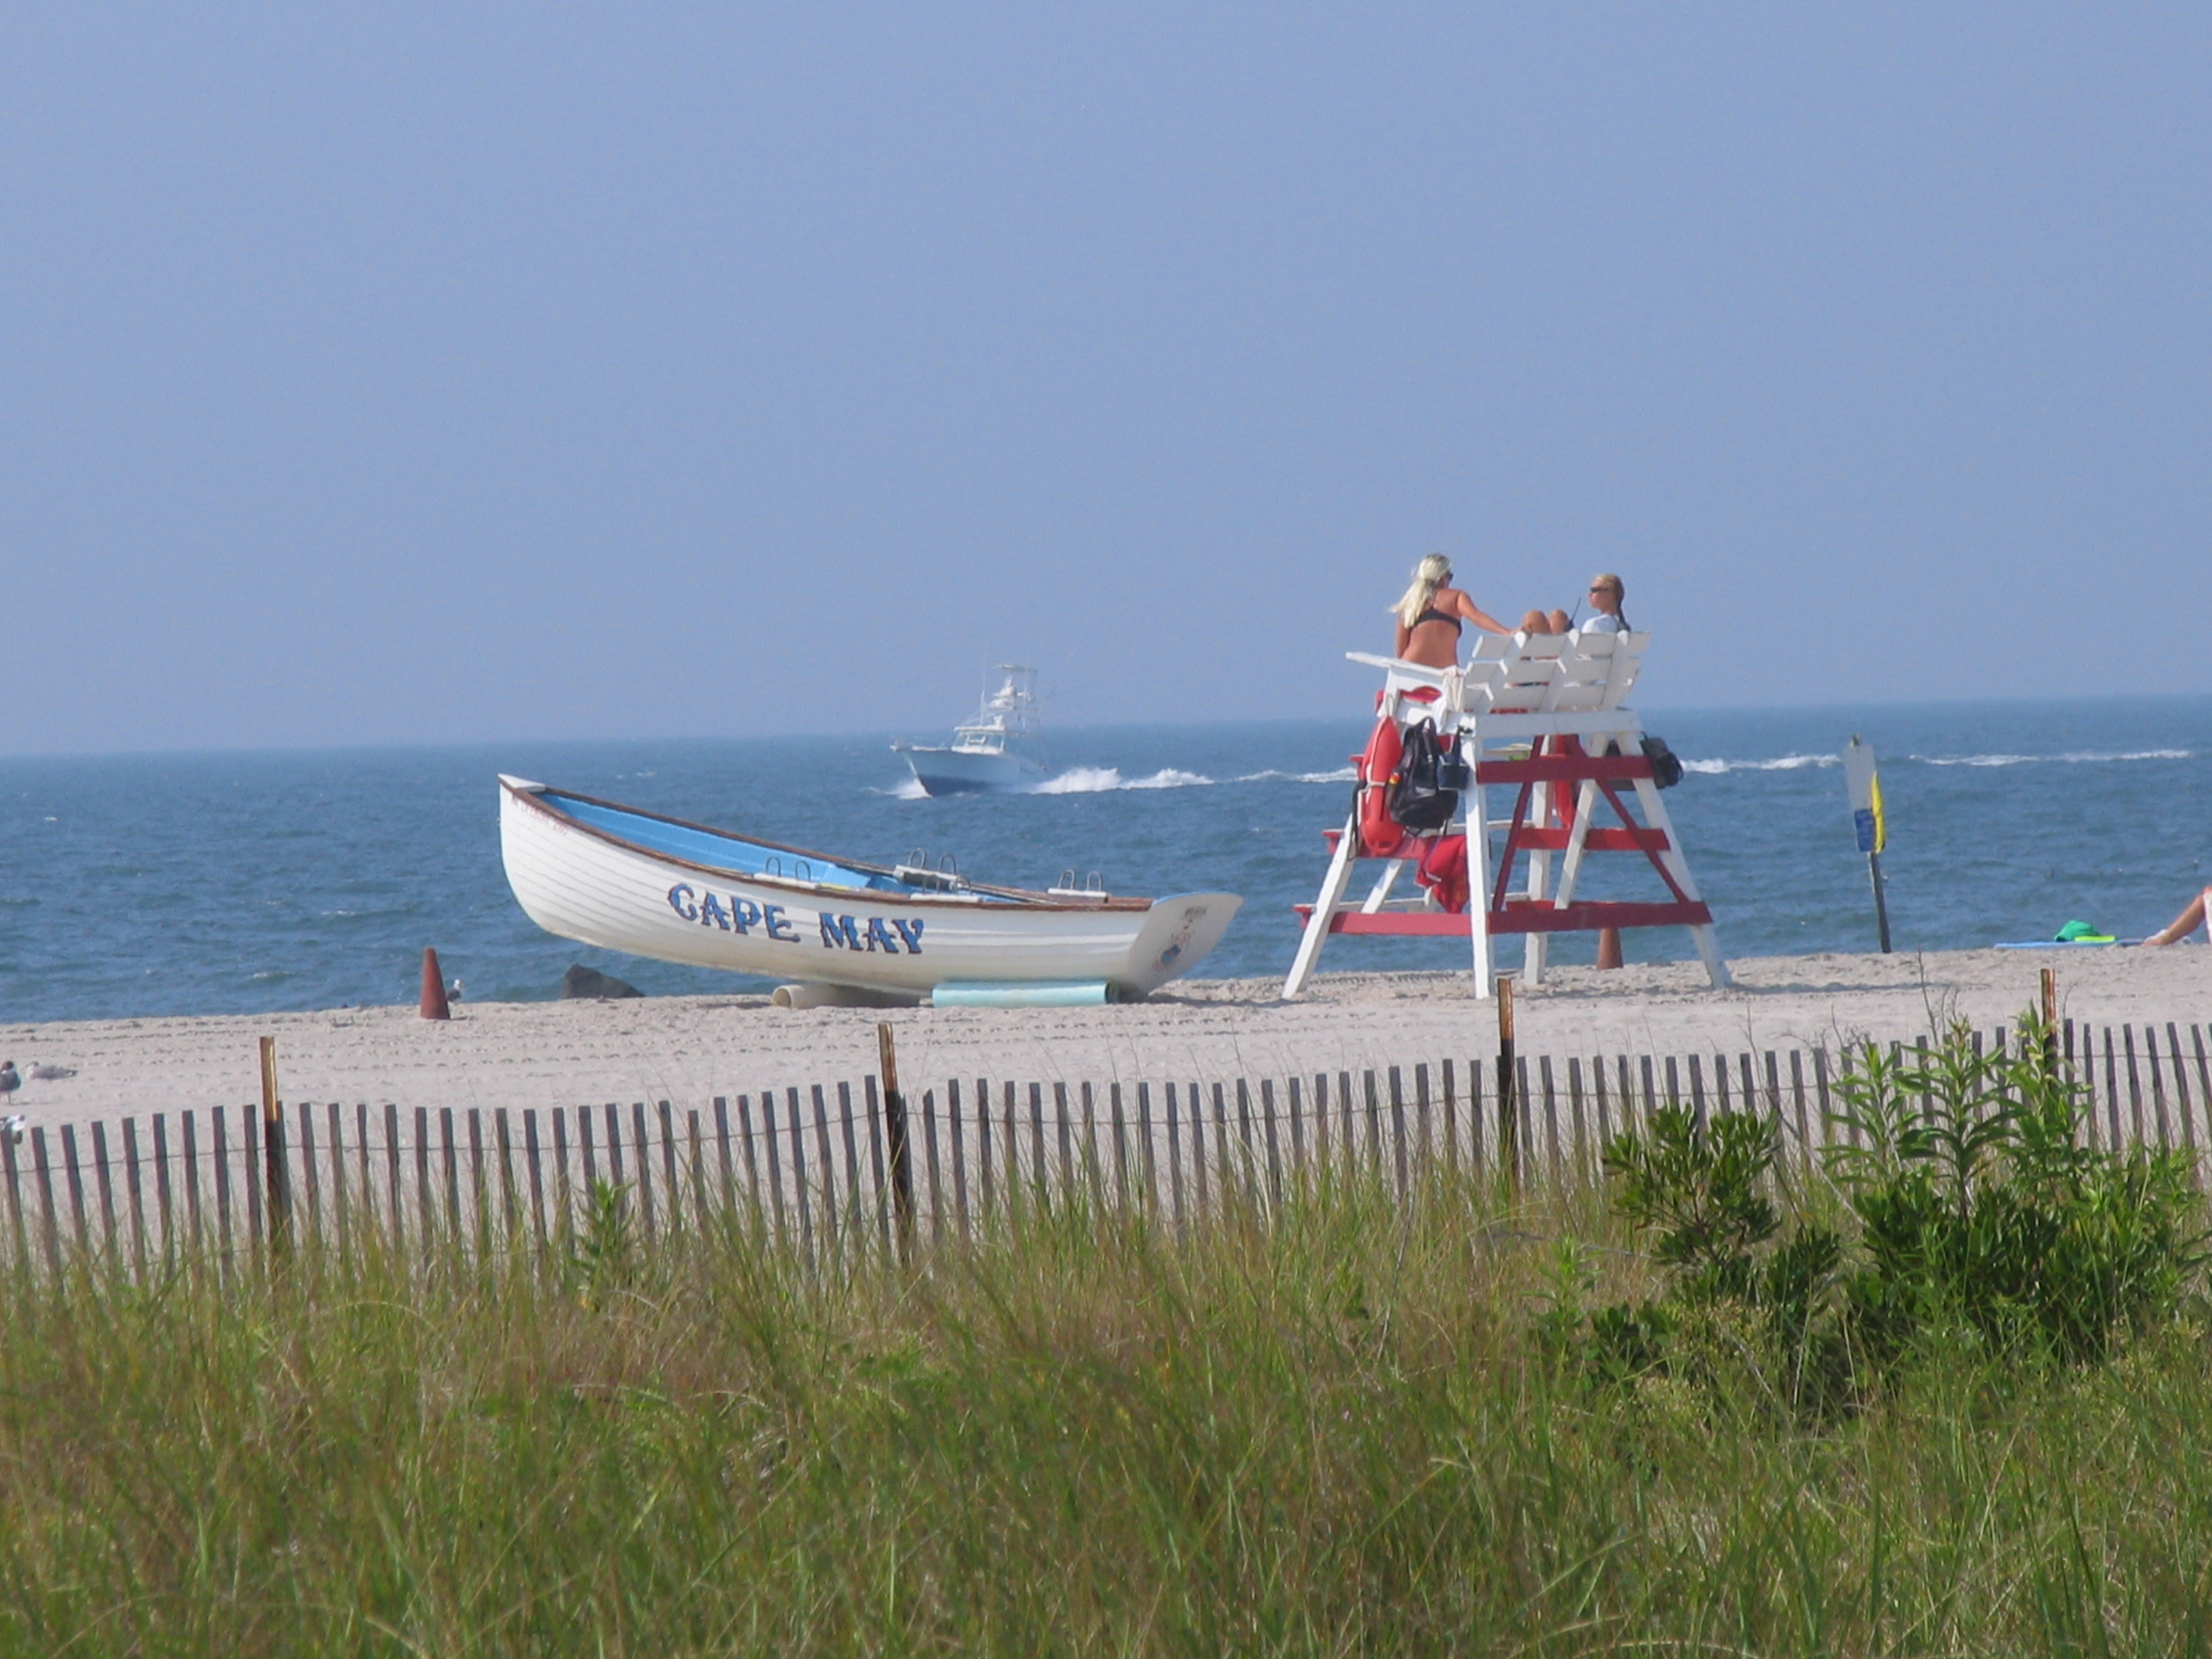 Cape May Summer Beach Rentals